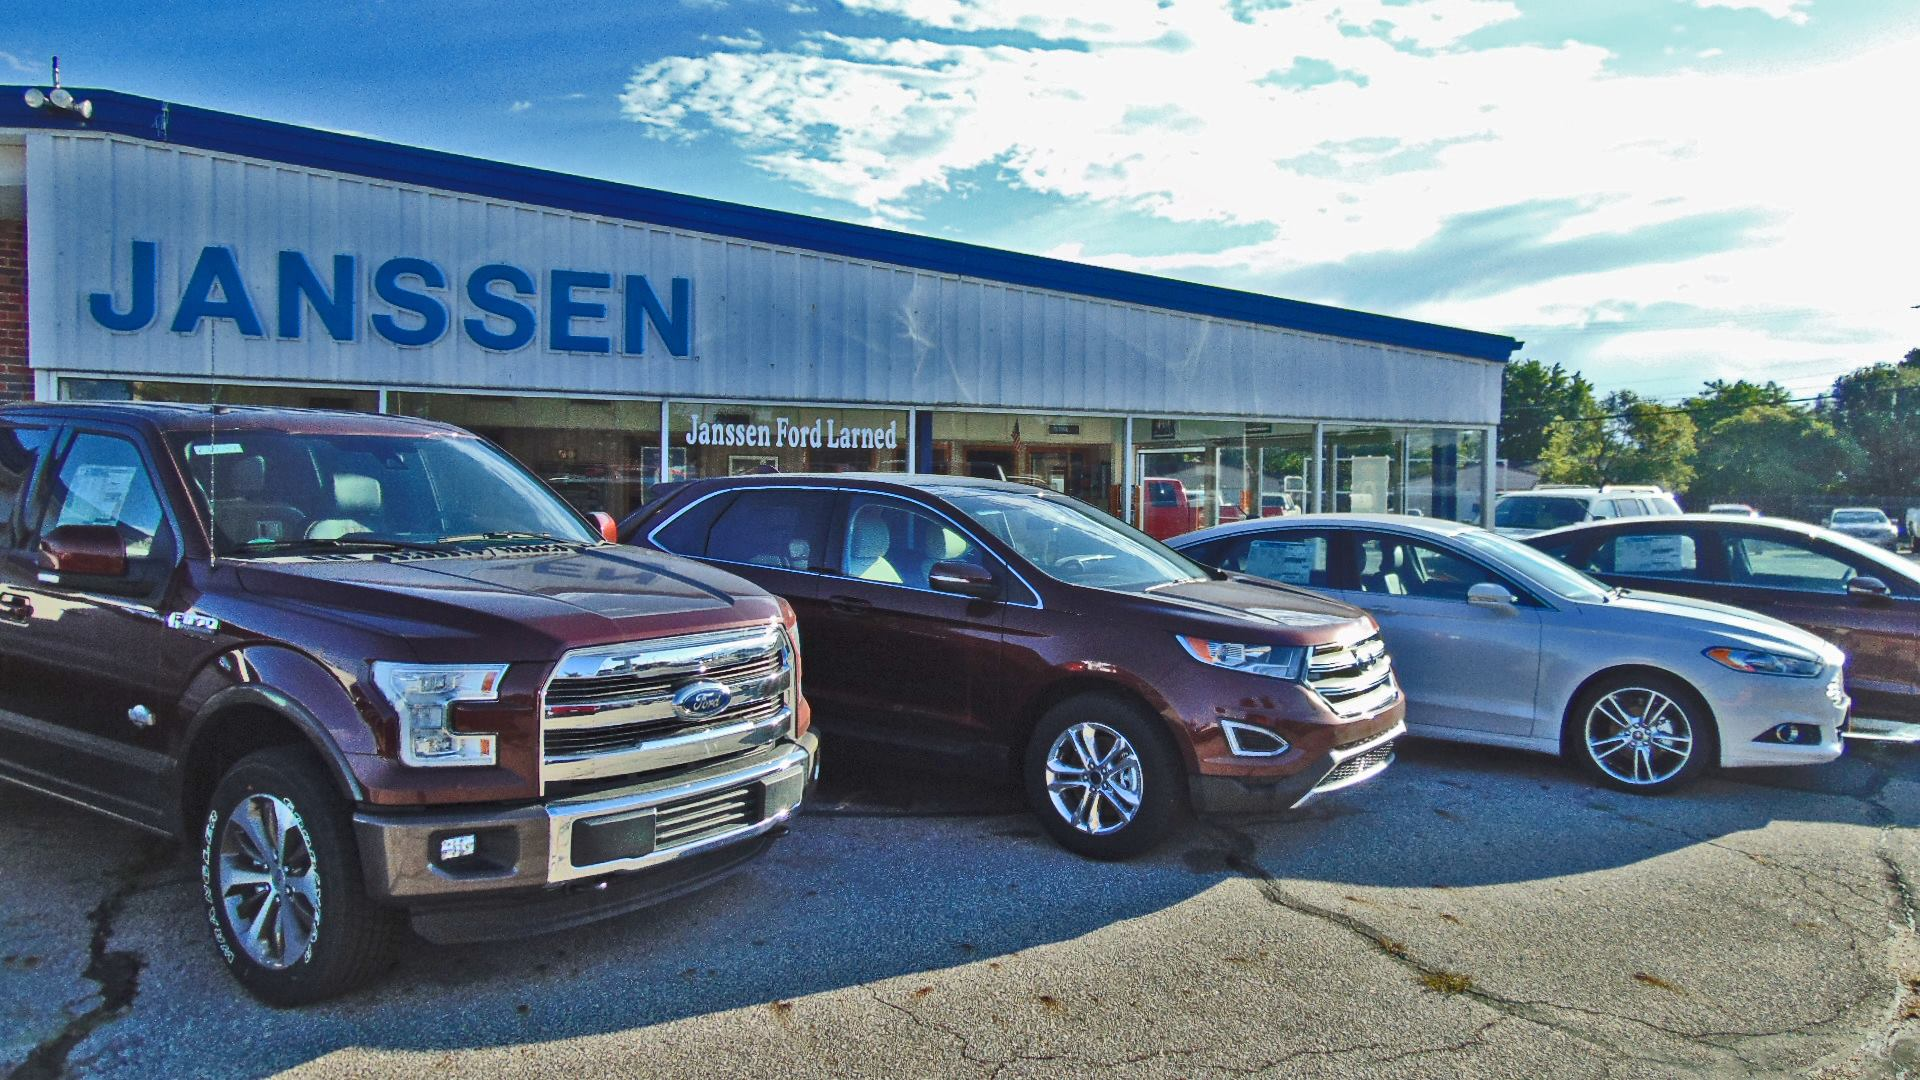 About Janssen Ford Of Larned A Ford Dealership In Larned